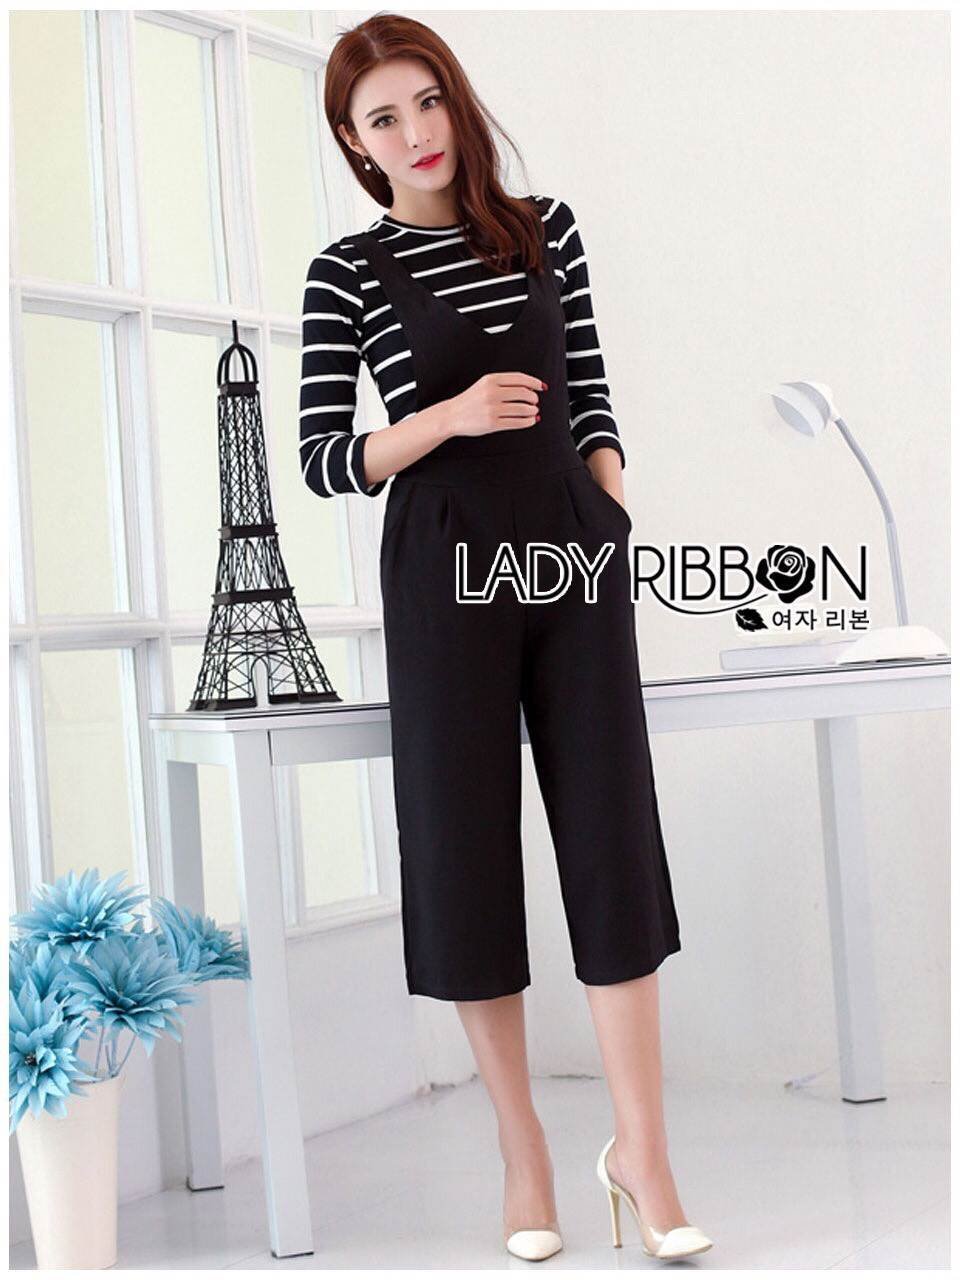 Lady Ribbon's Made Lady Chiara Minimal Chic Striped Top with Overall Jumpsuit Set